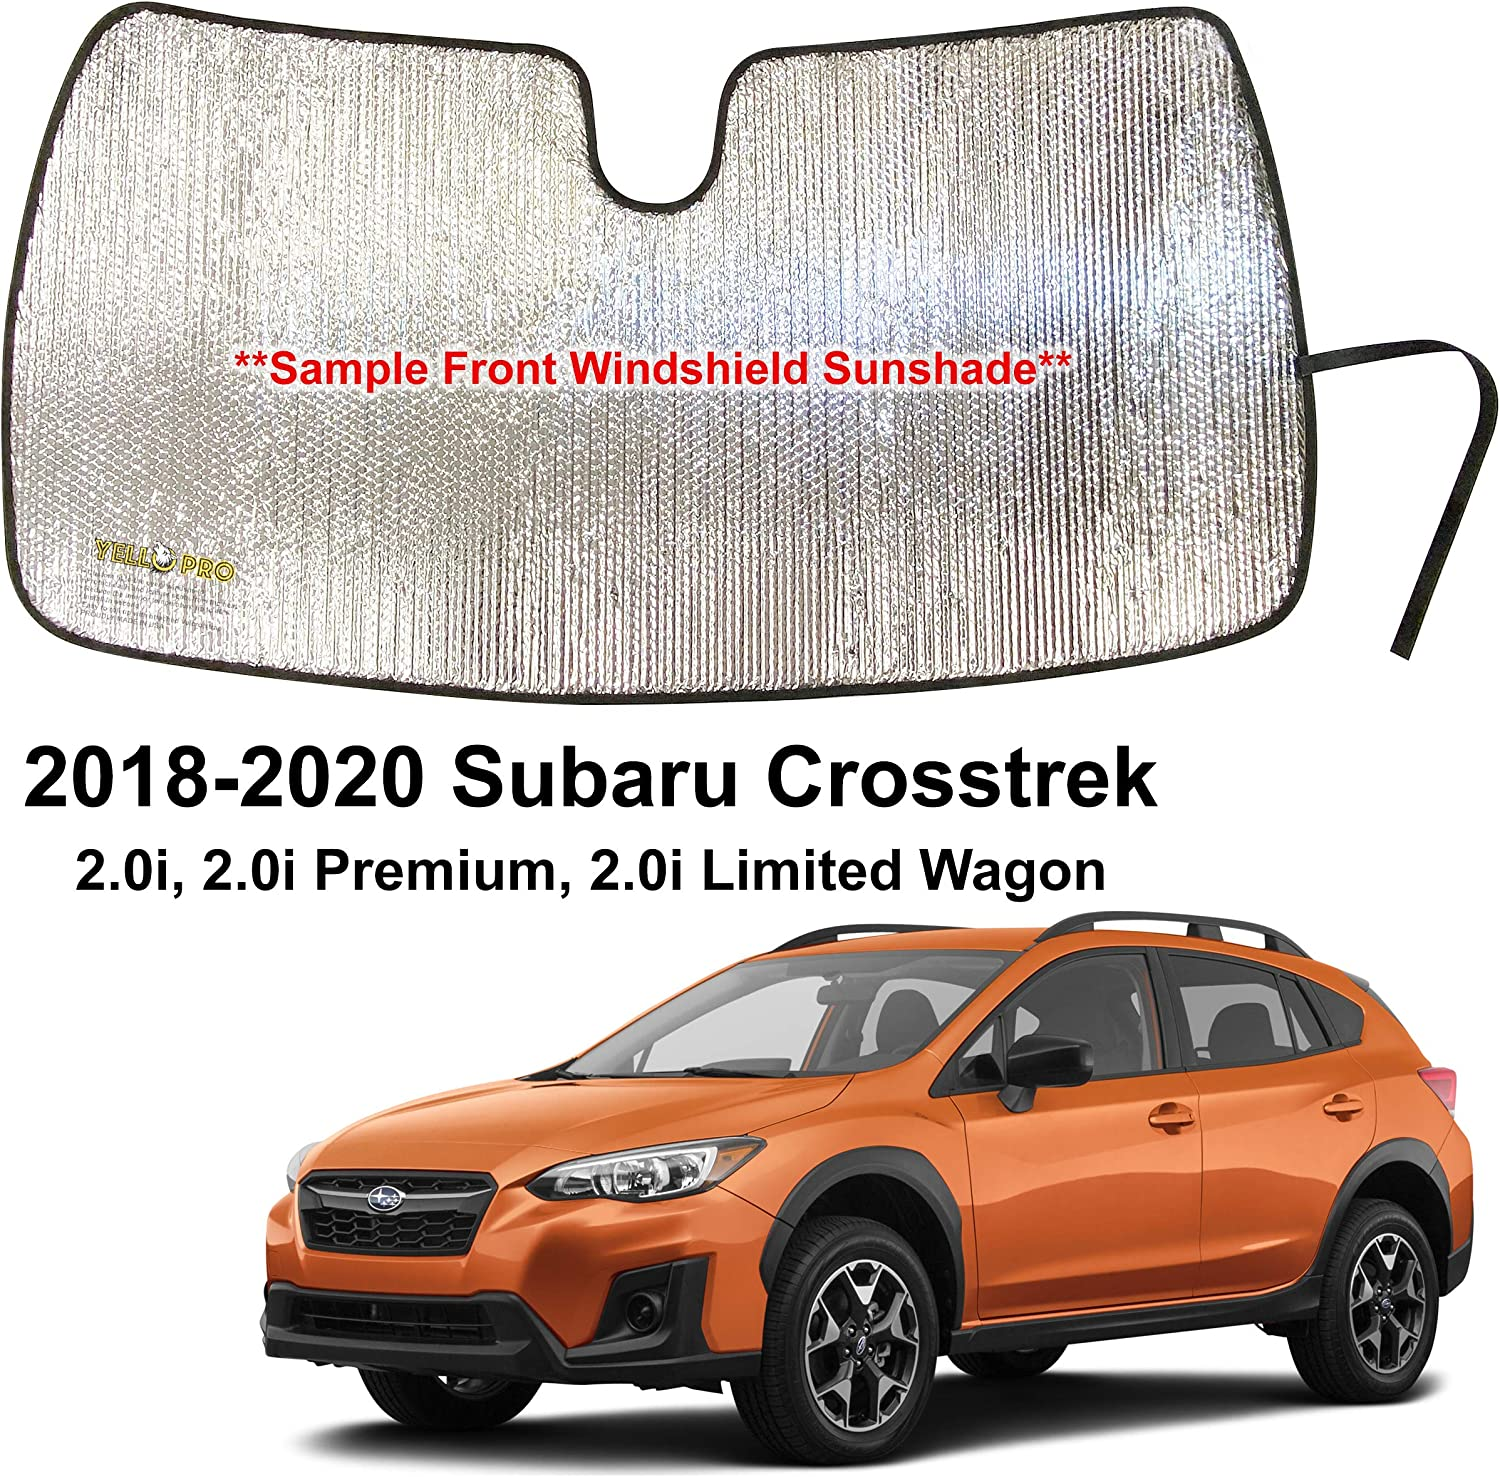 YelloPro Custom Fit Automotive Reflective Front Windshield Sunshade Accessories UV Reflector Sun Protection for 2018 2019 2020 Subaru Crosstrek 2.0i, 2.0i Premium, 2.0i Limited Wagon